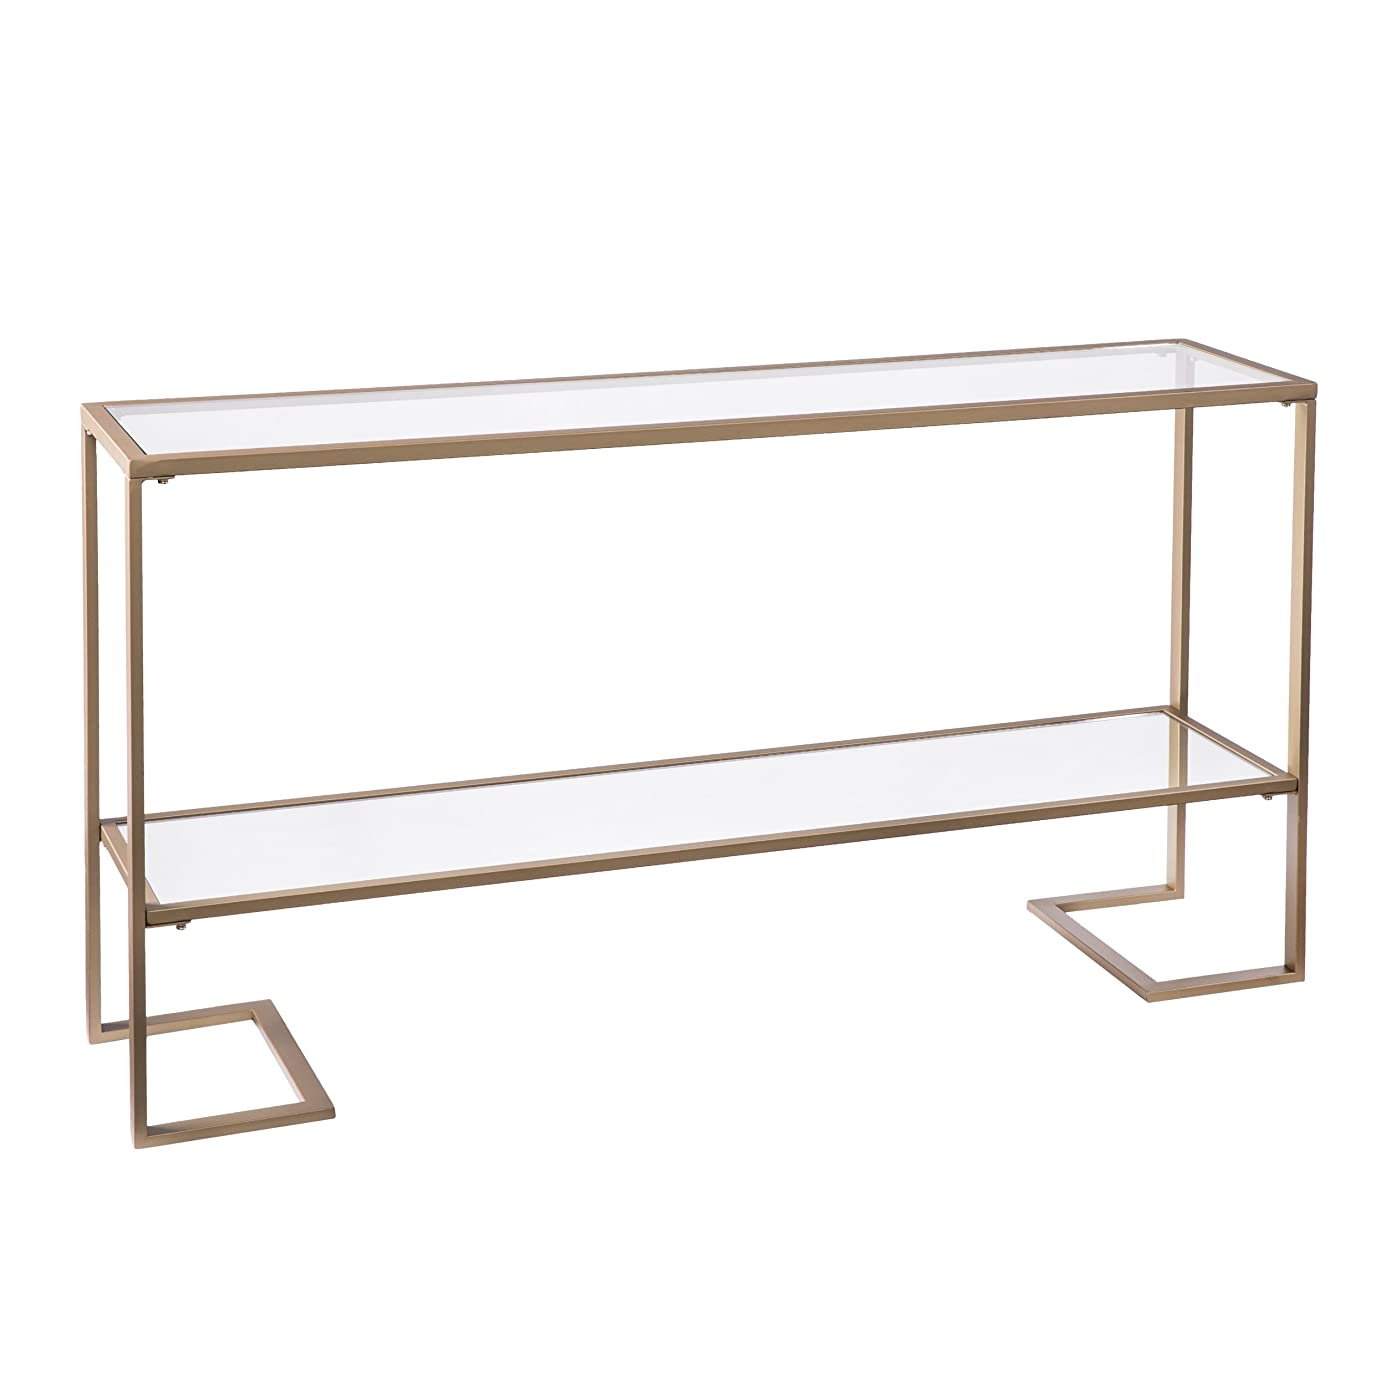 Furniture HotSpot - Metal Skinny Console Table (52x29) - Slim Profile w/Mirror Top